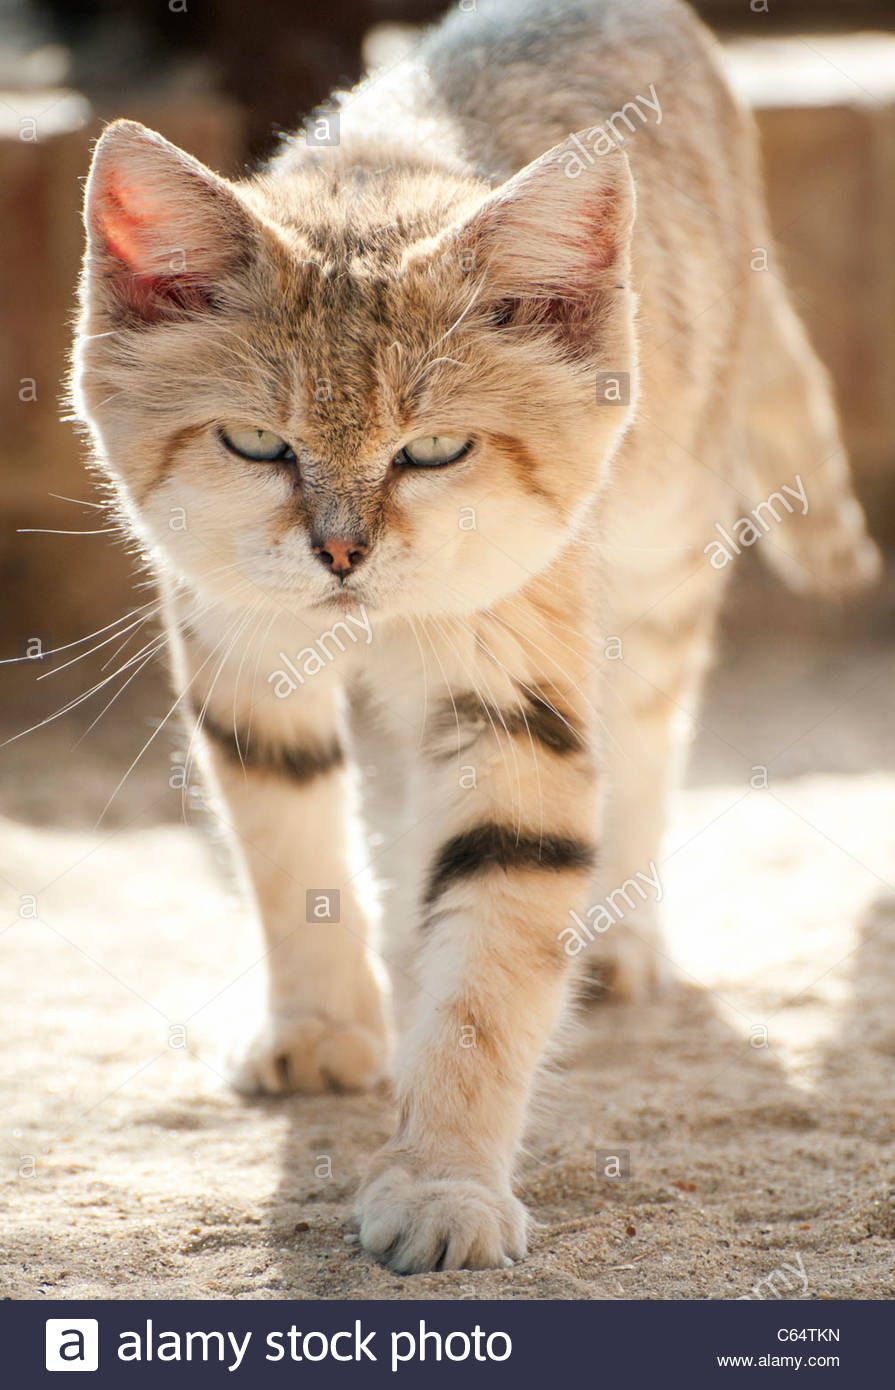 Male Arabian sand cat walking towards cameraStock Photo